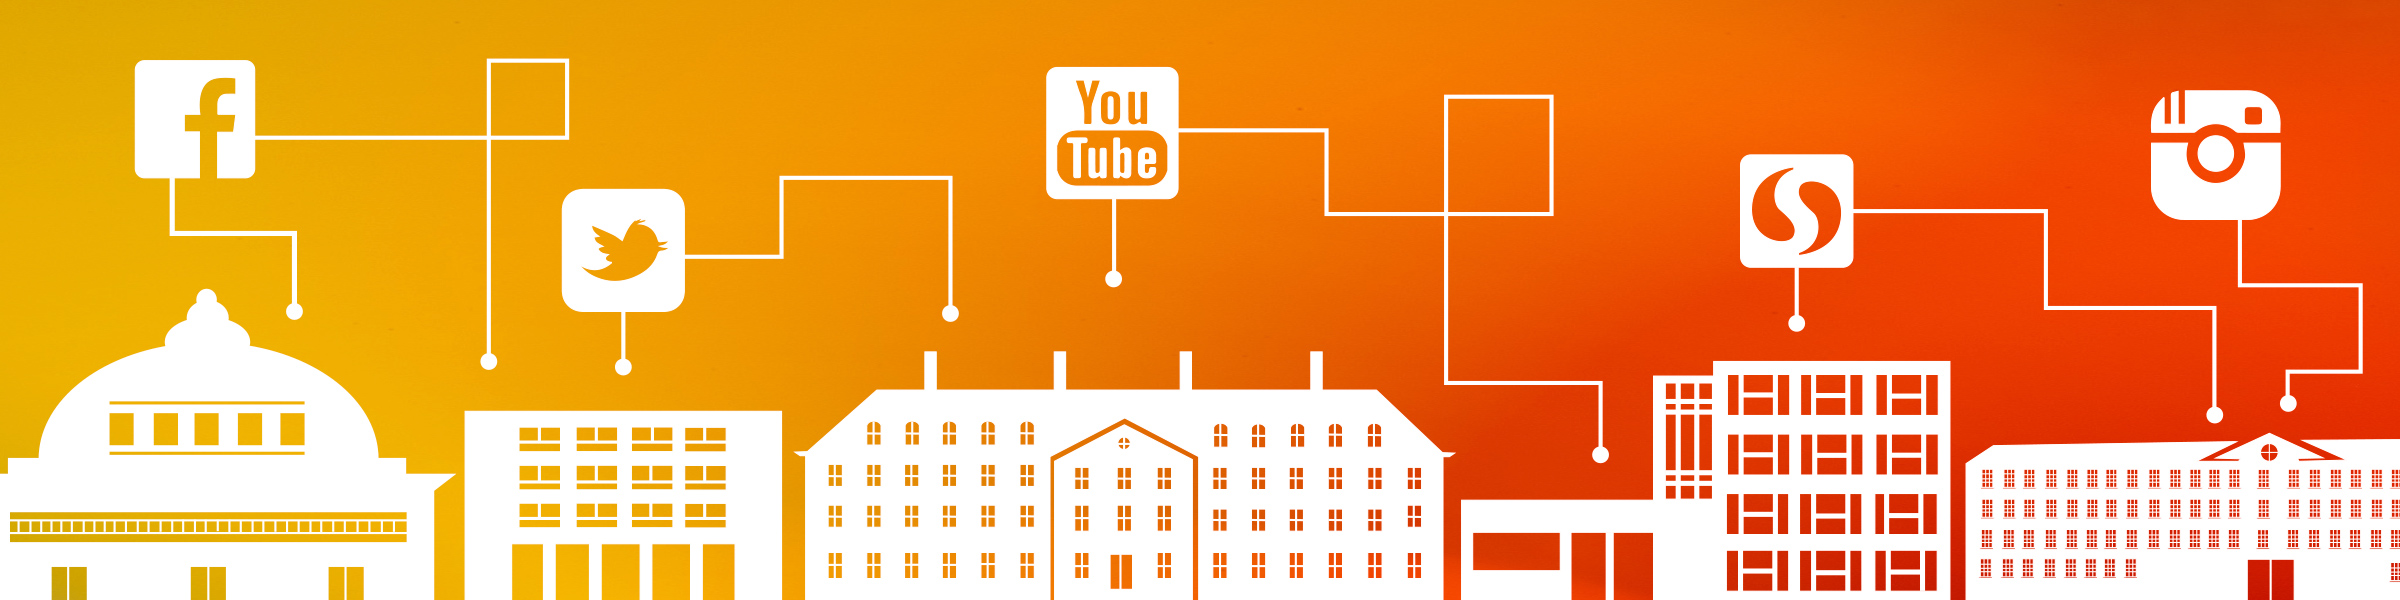 Orange And Yellow Images Showing Housing Buildings And Social Media Icons